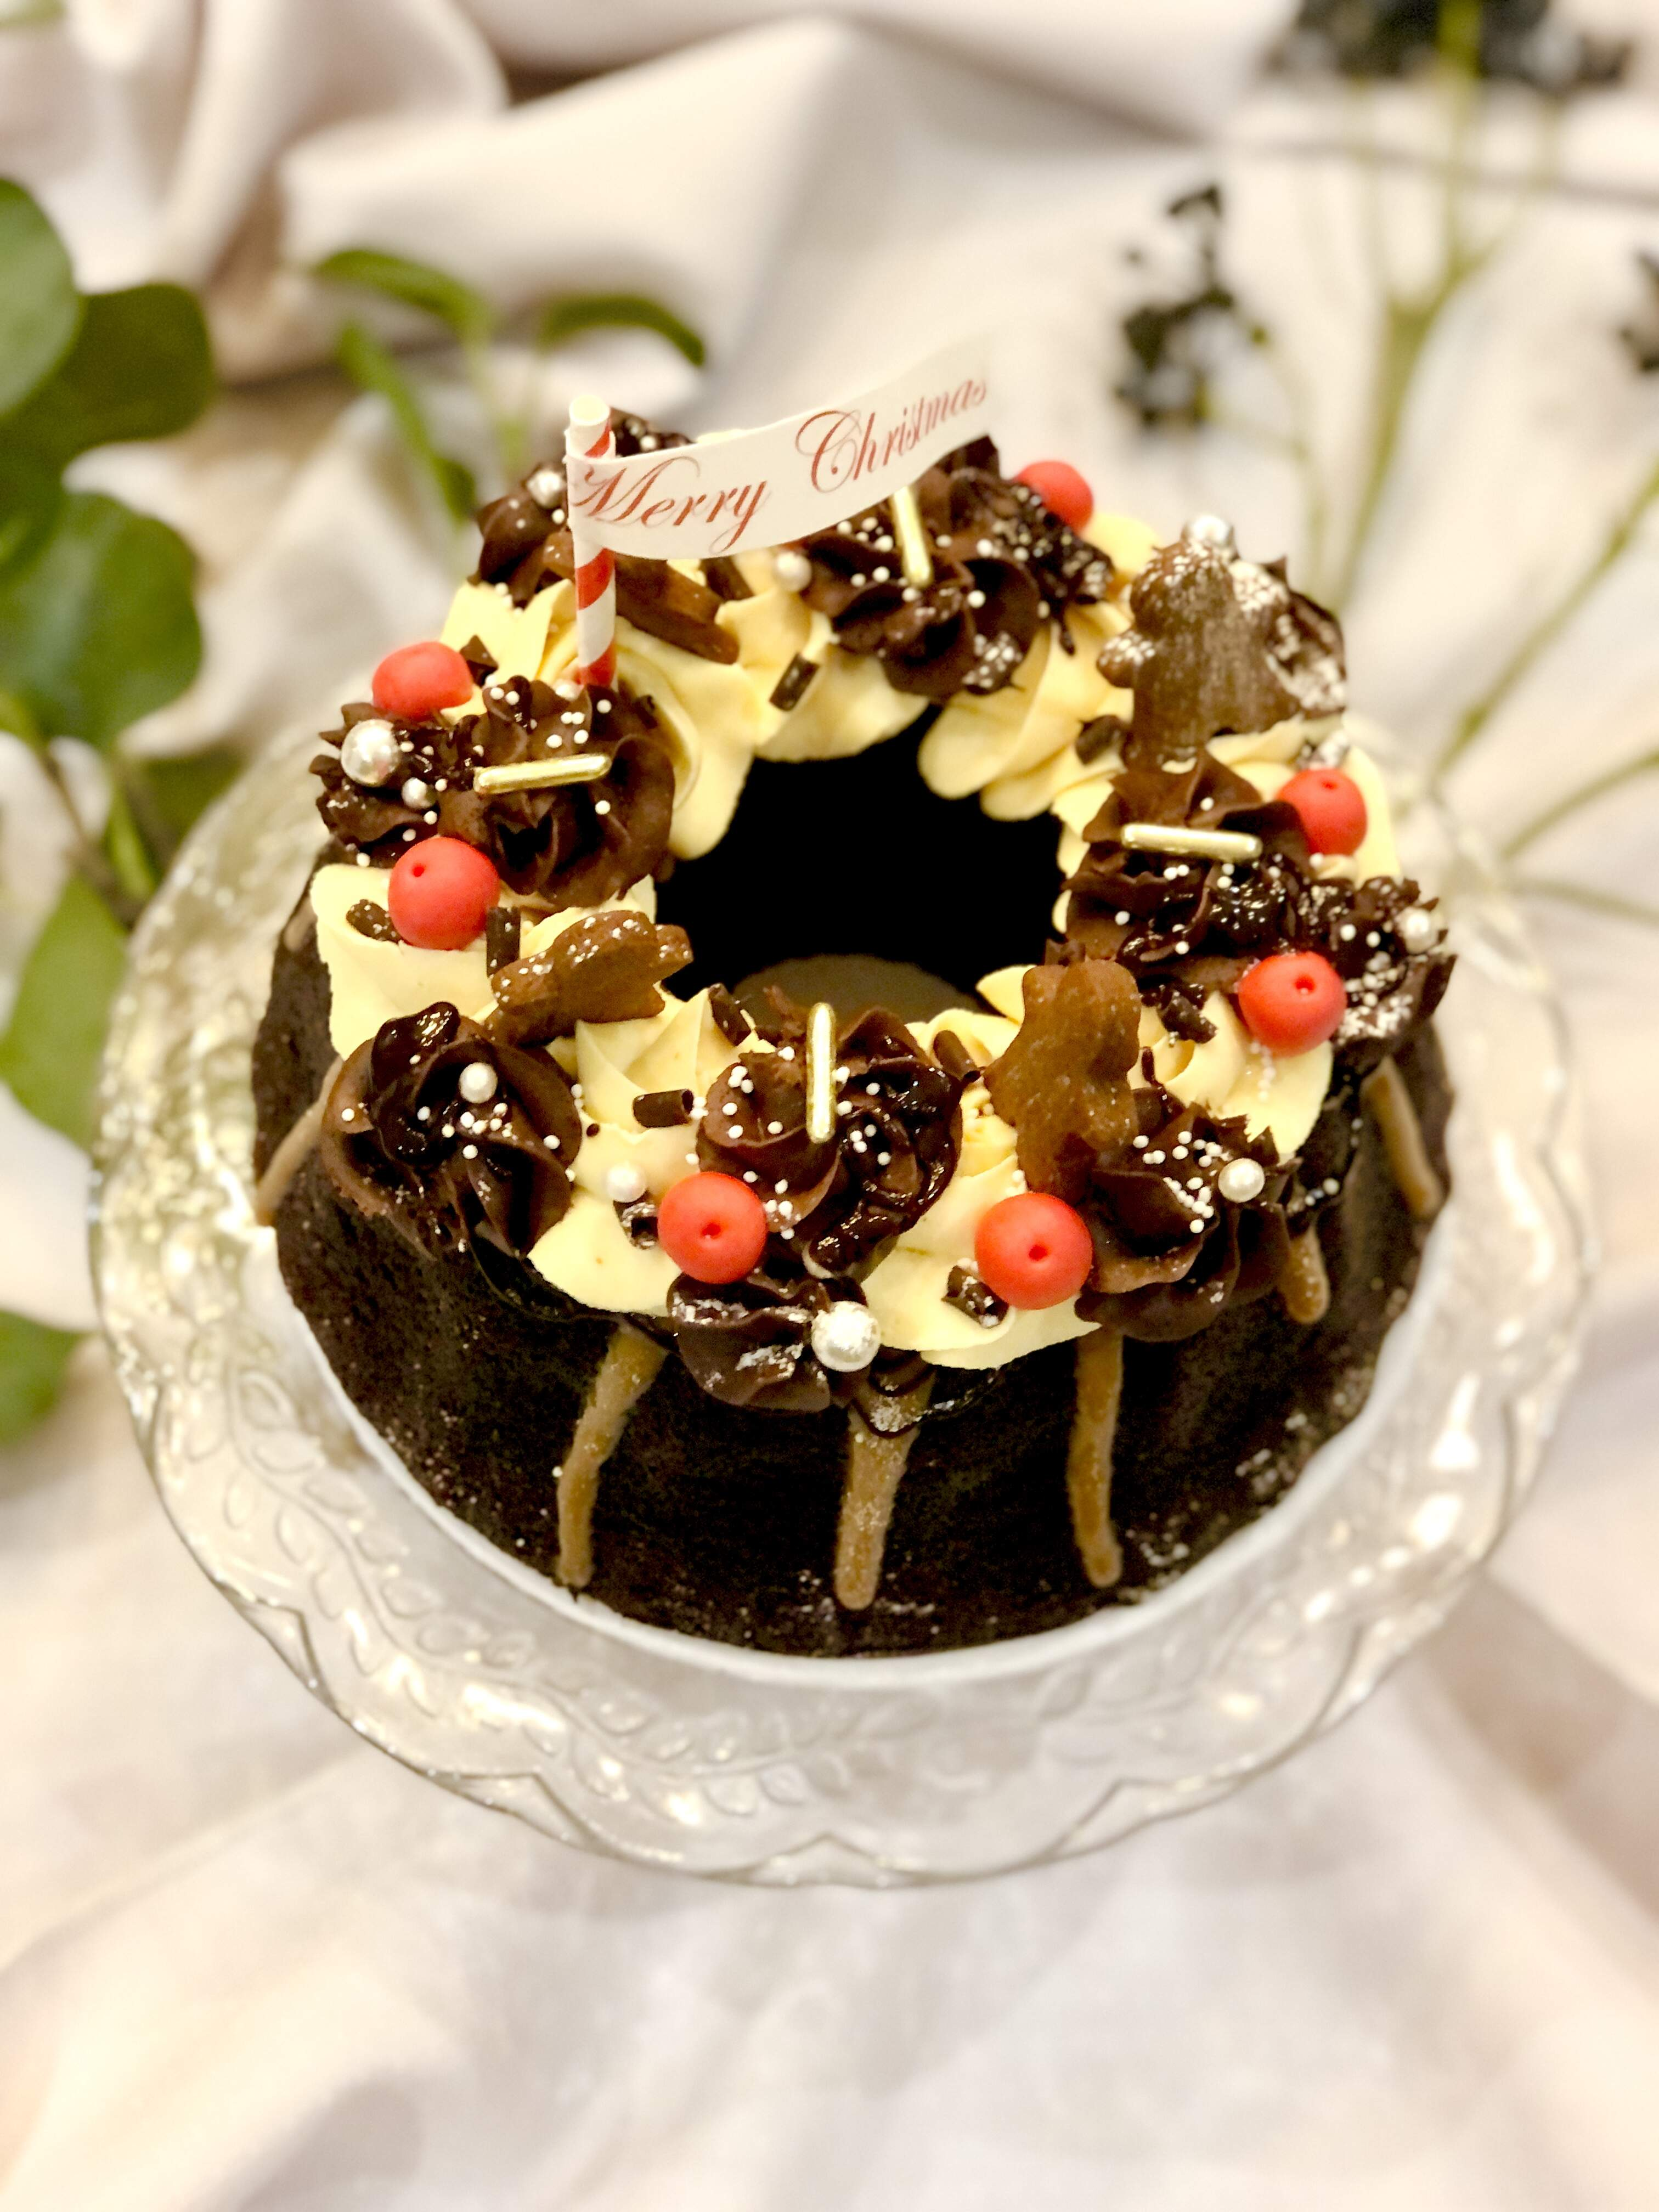 Christmas Wreath Salted Caramel and Chocolate Cake - Pre-order